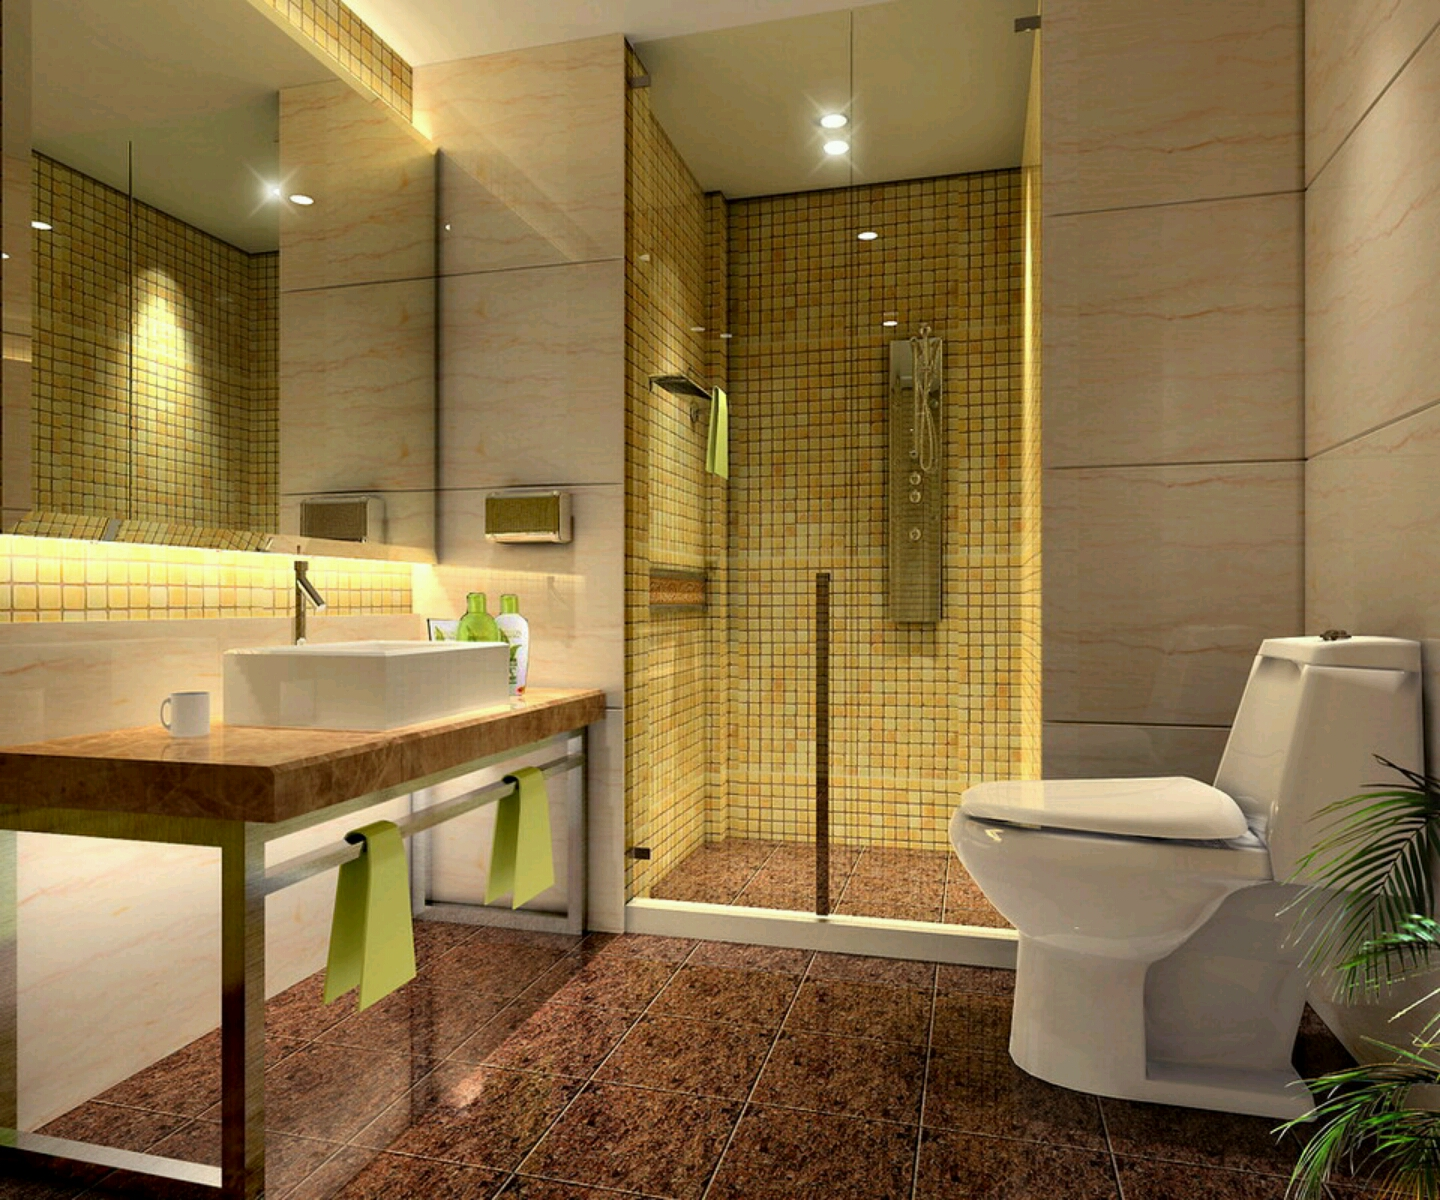 top small bathroom designs modern bathrooms best designs ideas click for details bathrooms